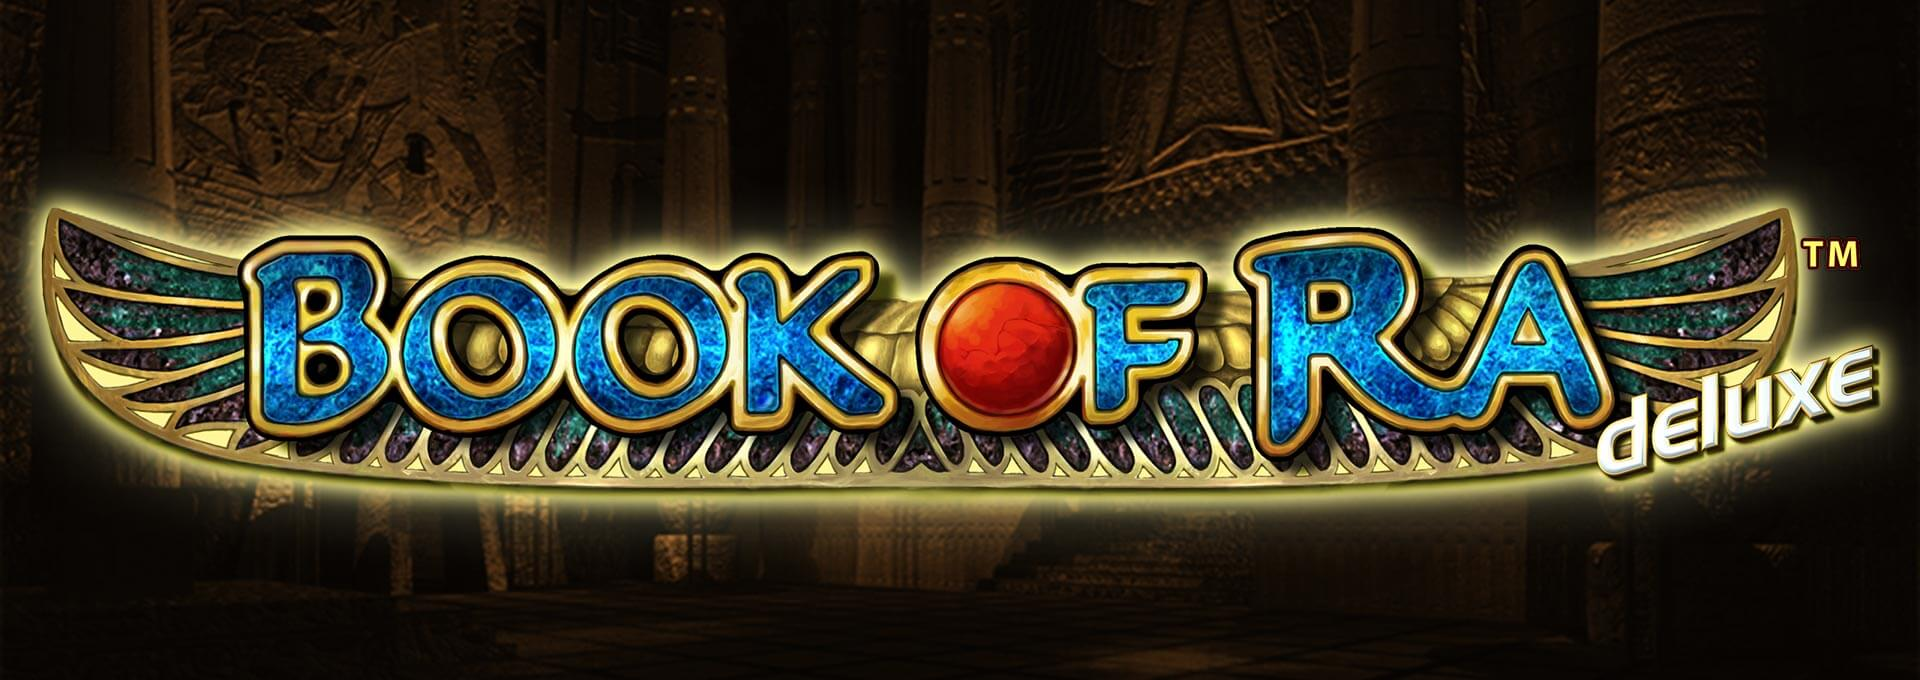 casino book of ra online supra online